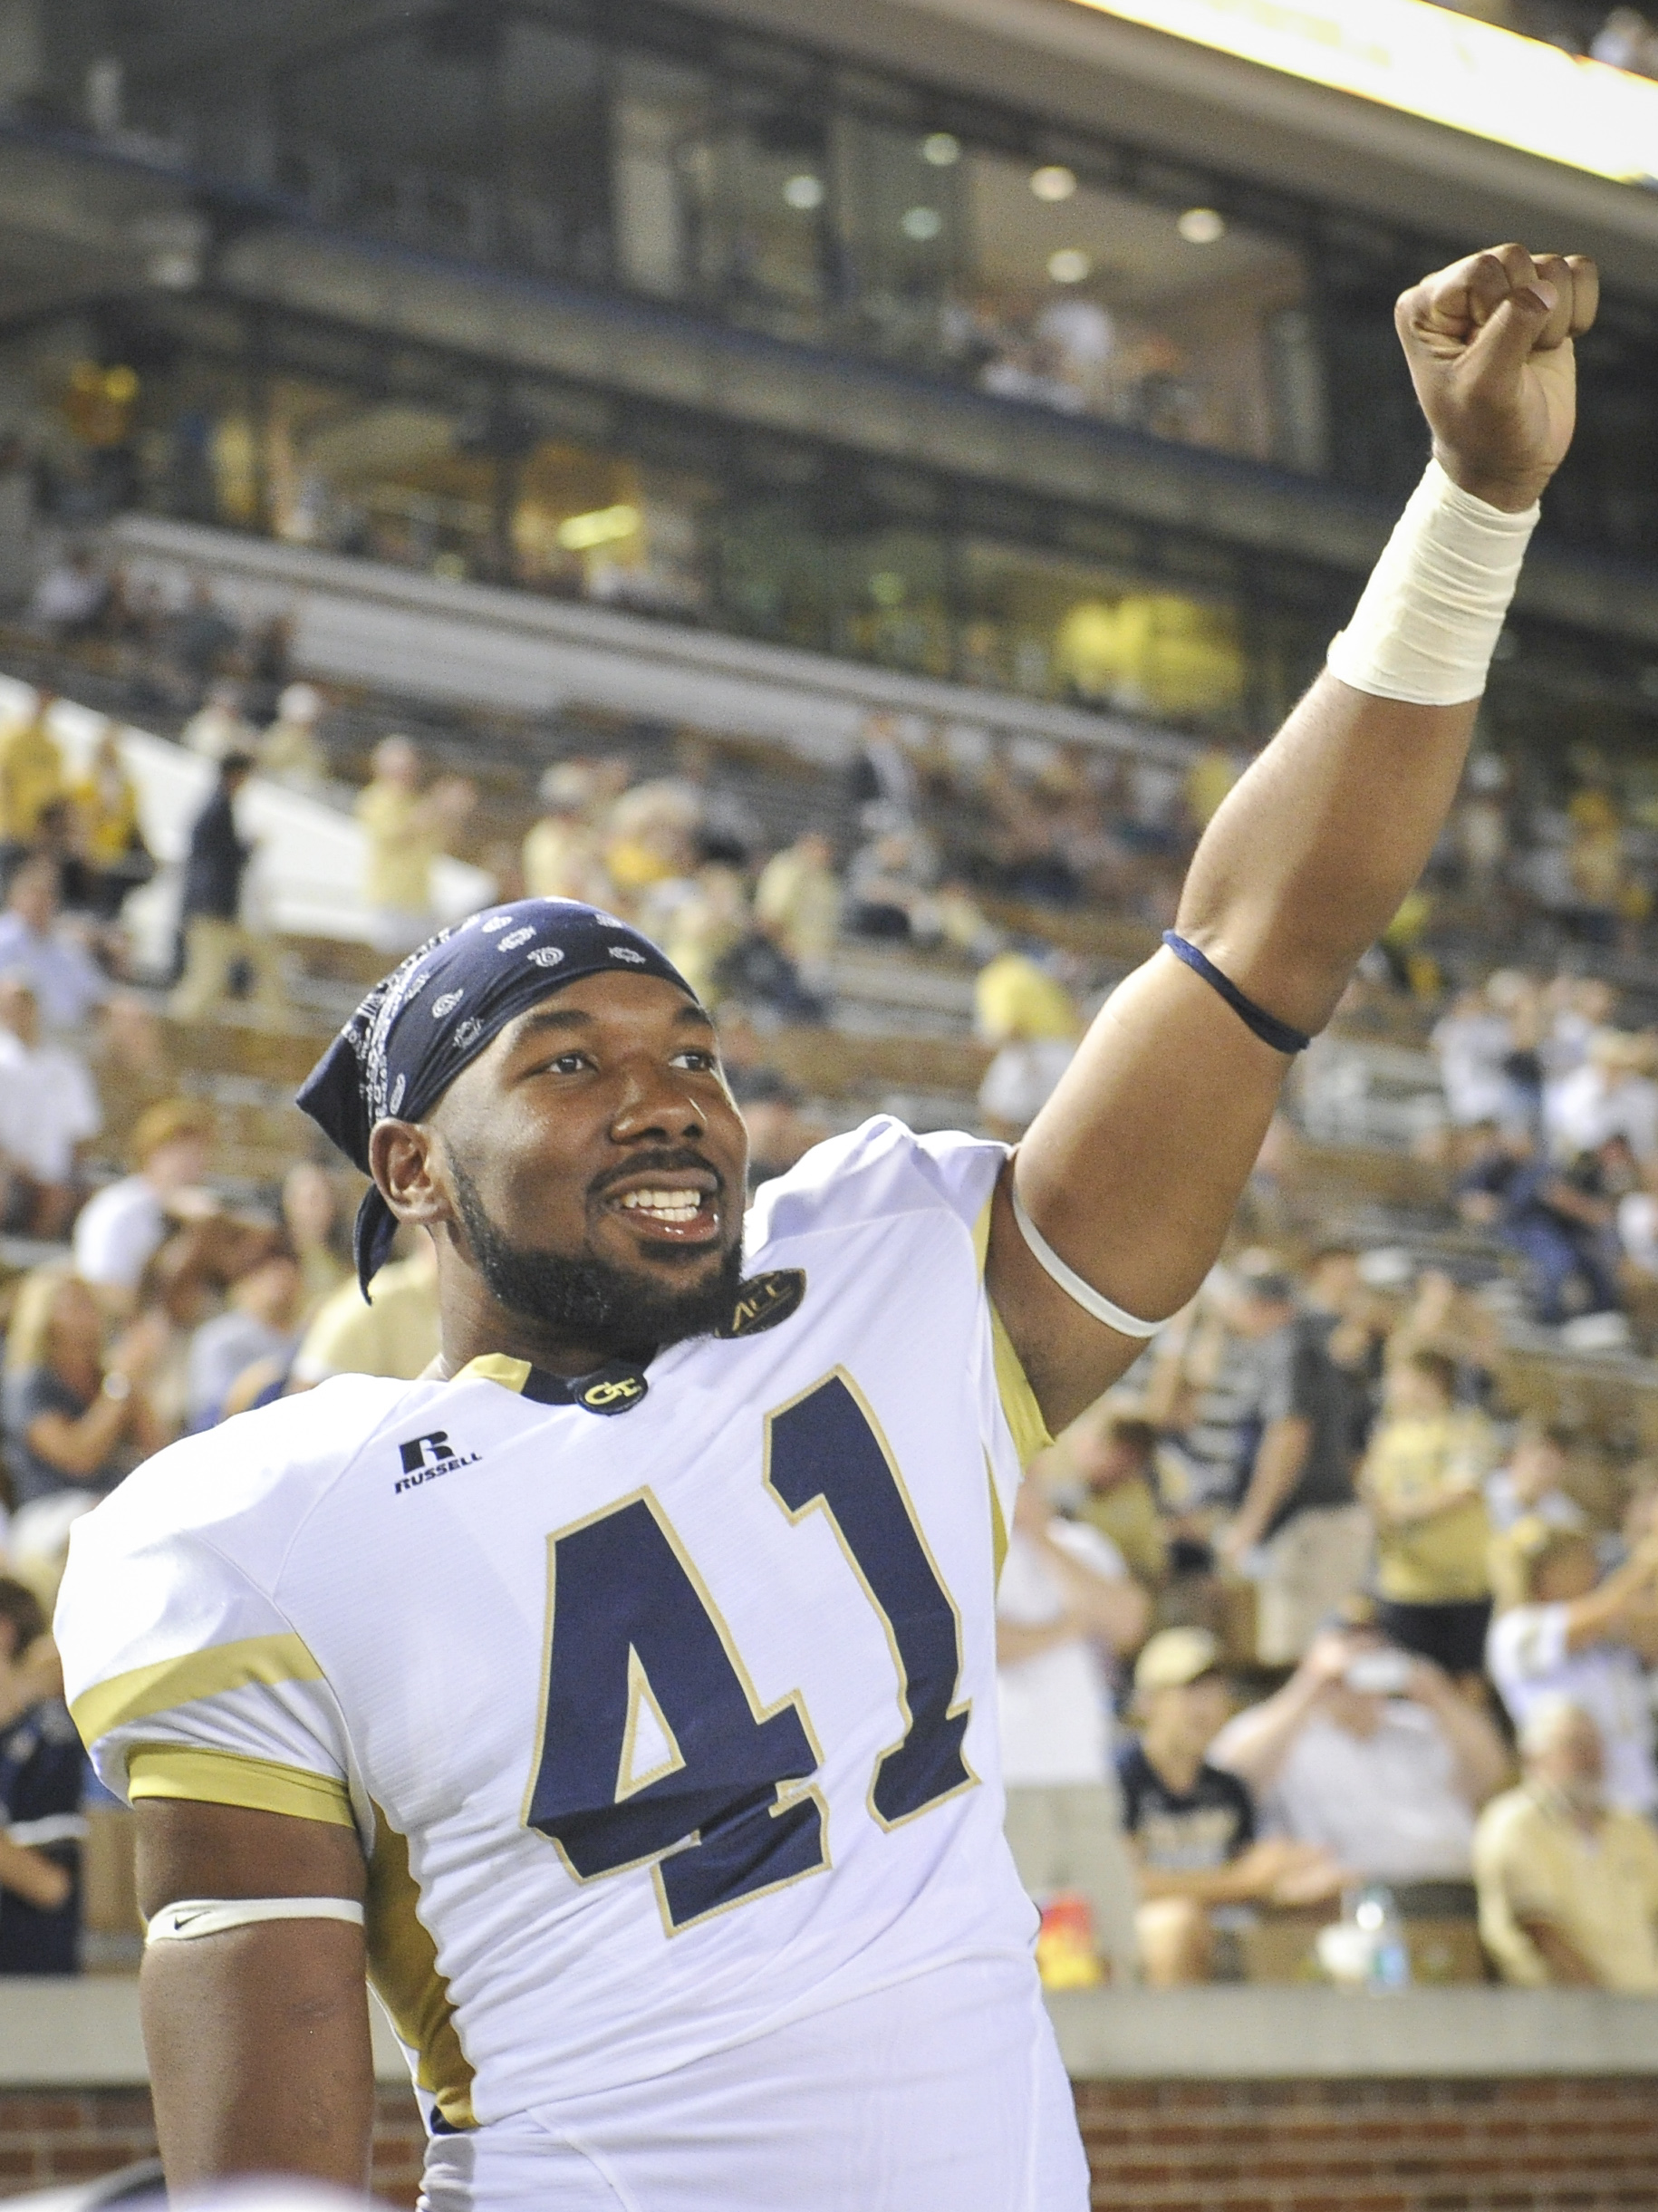 Georgia Tech defensive end Rod Rook-Chungong (41) celebrates as an NCAA college football game against Alcorn State comes to an end, Thursday, Sept. 3, 2015, in Atlanta. Georgia Tech won 69-6. (AP Photo/John Amis)